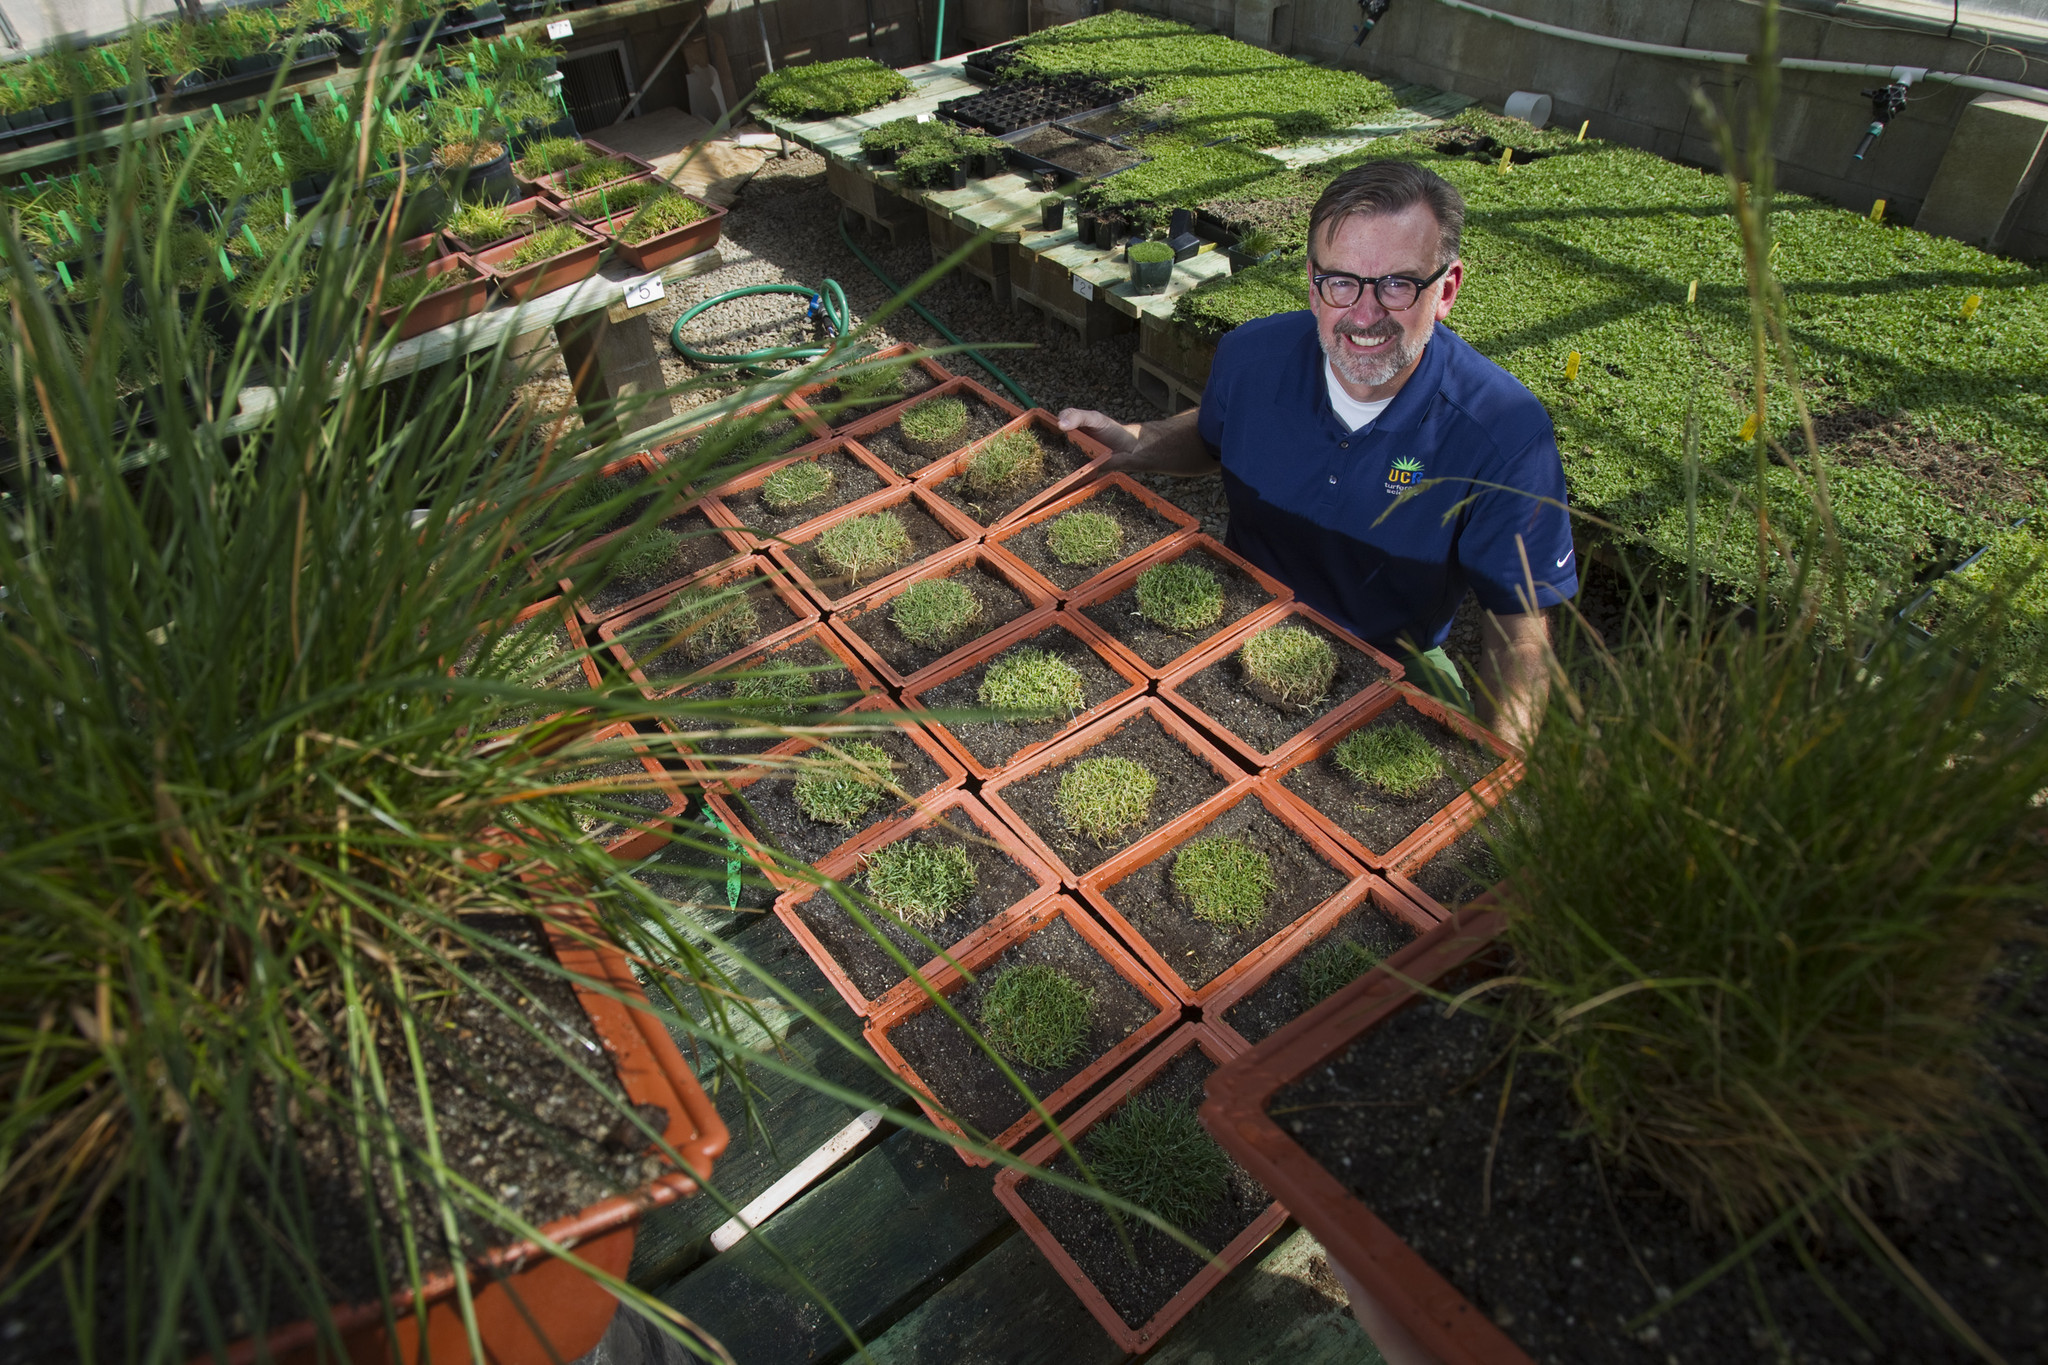 Lawns: Best warm-season grasses for drought conditions - The San ...